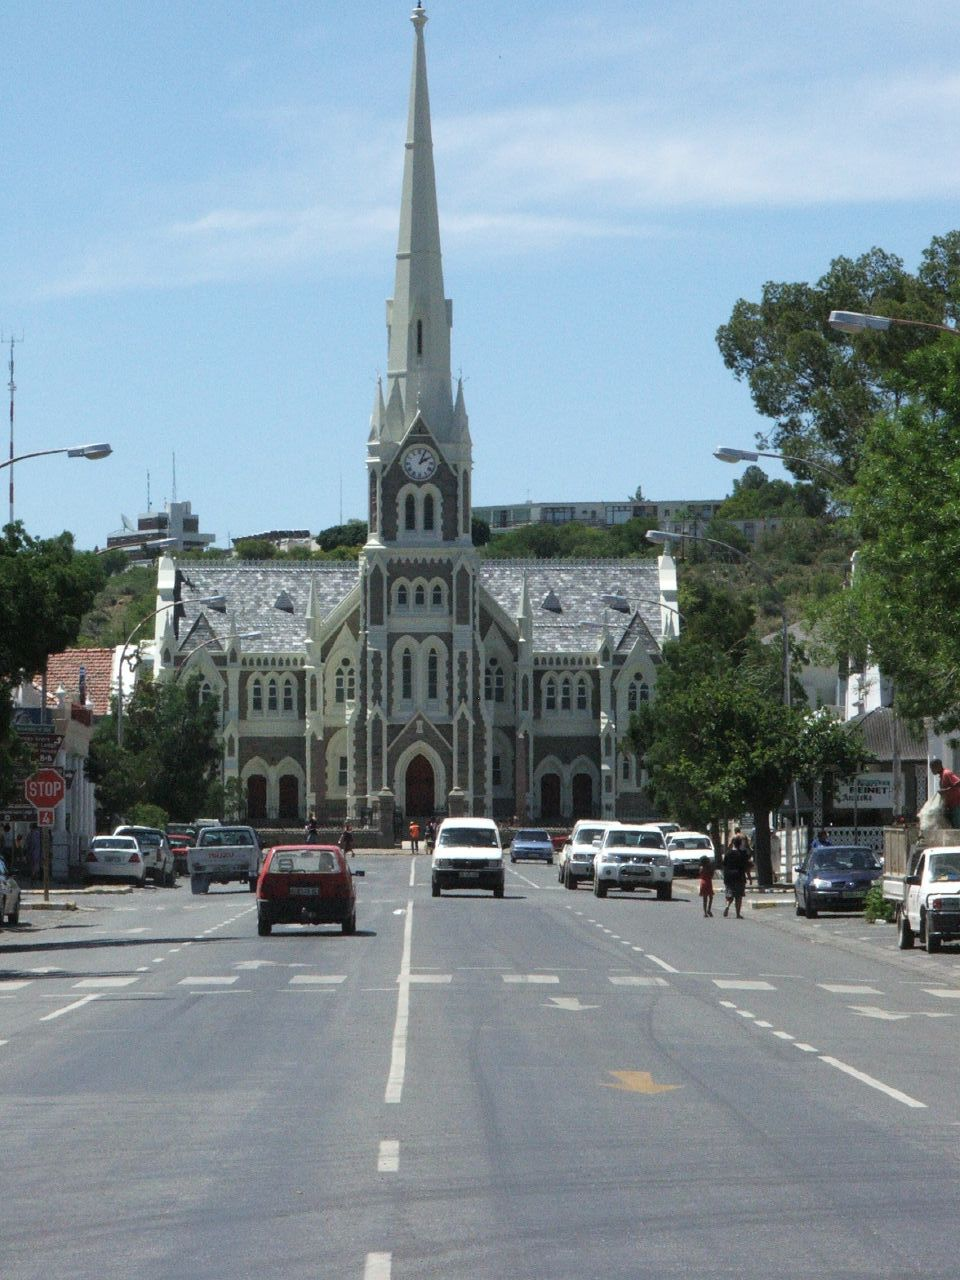 Graaff-Reinet South Africa  City pictures : Description Graaff Reinet Church, South Africa